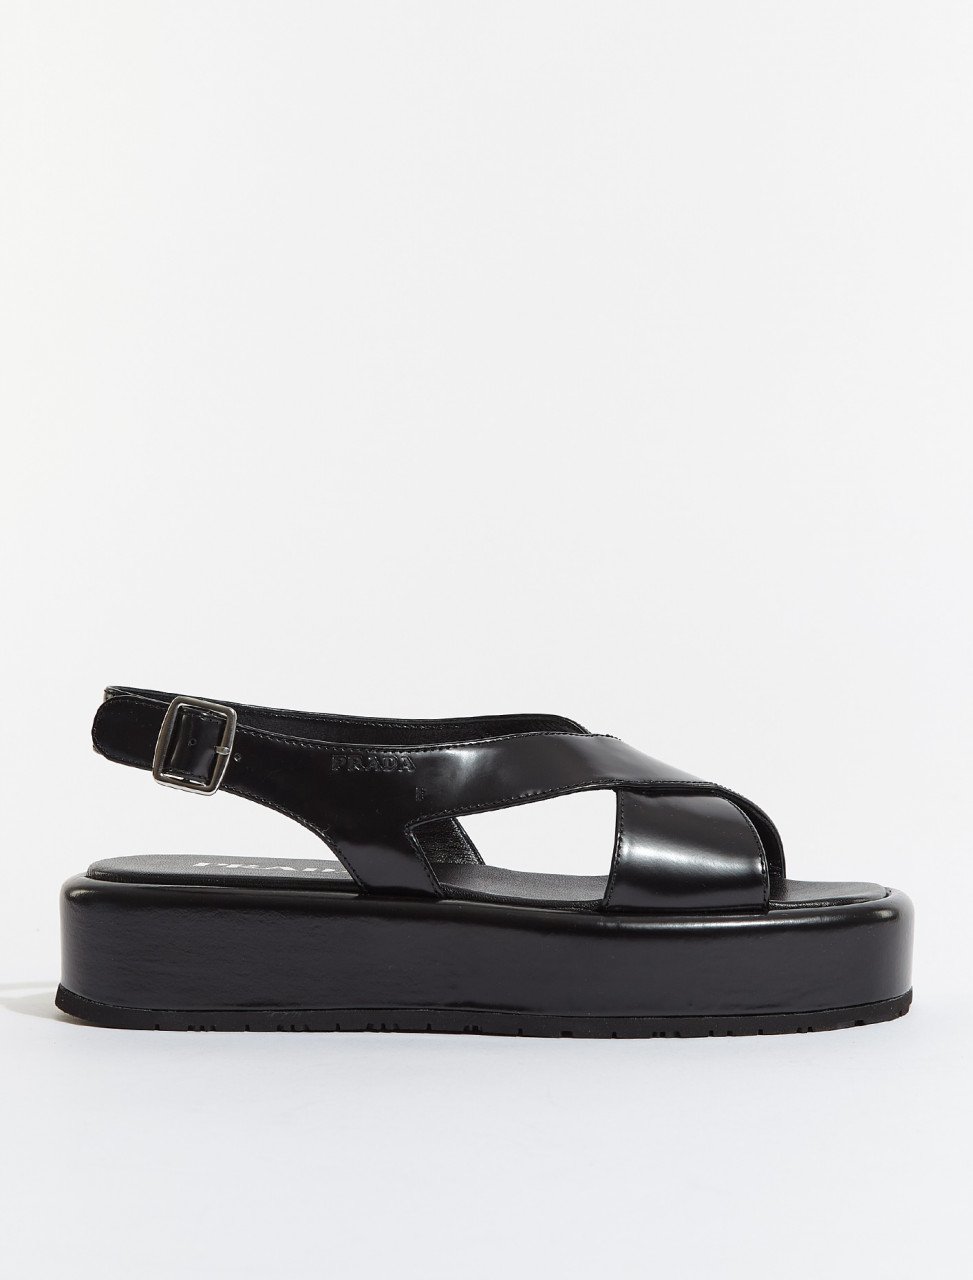 1XZ743-F0002 PRADA WEDGE LEATHER SANDALS IN BLACK